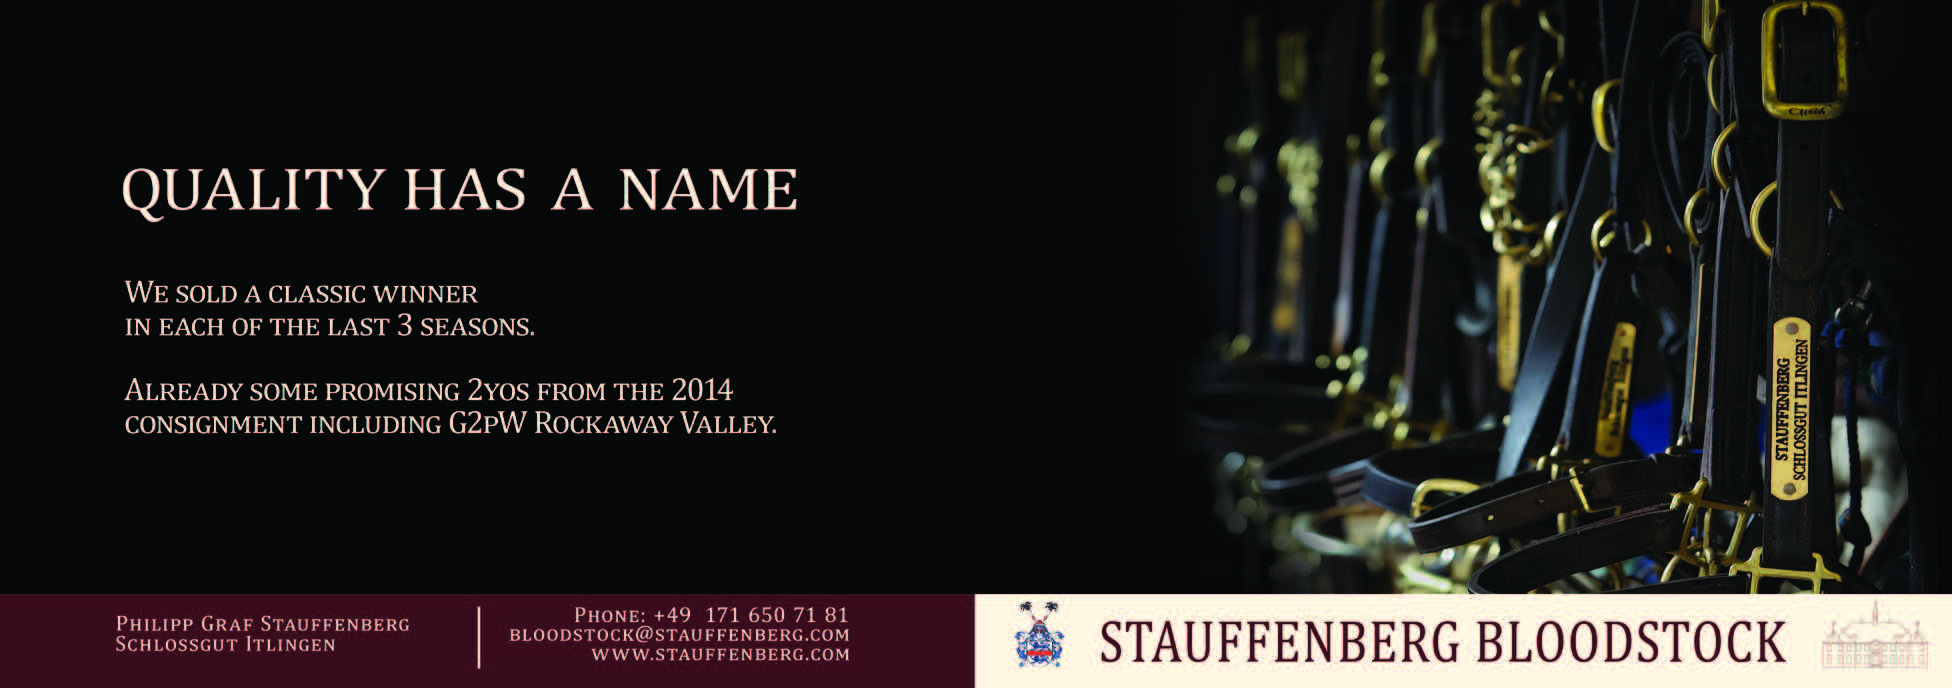 Stauffenberg Bloodstock | quality has a name